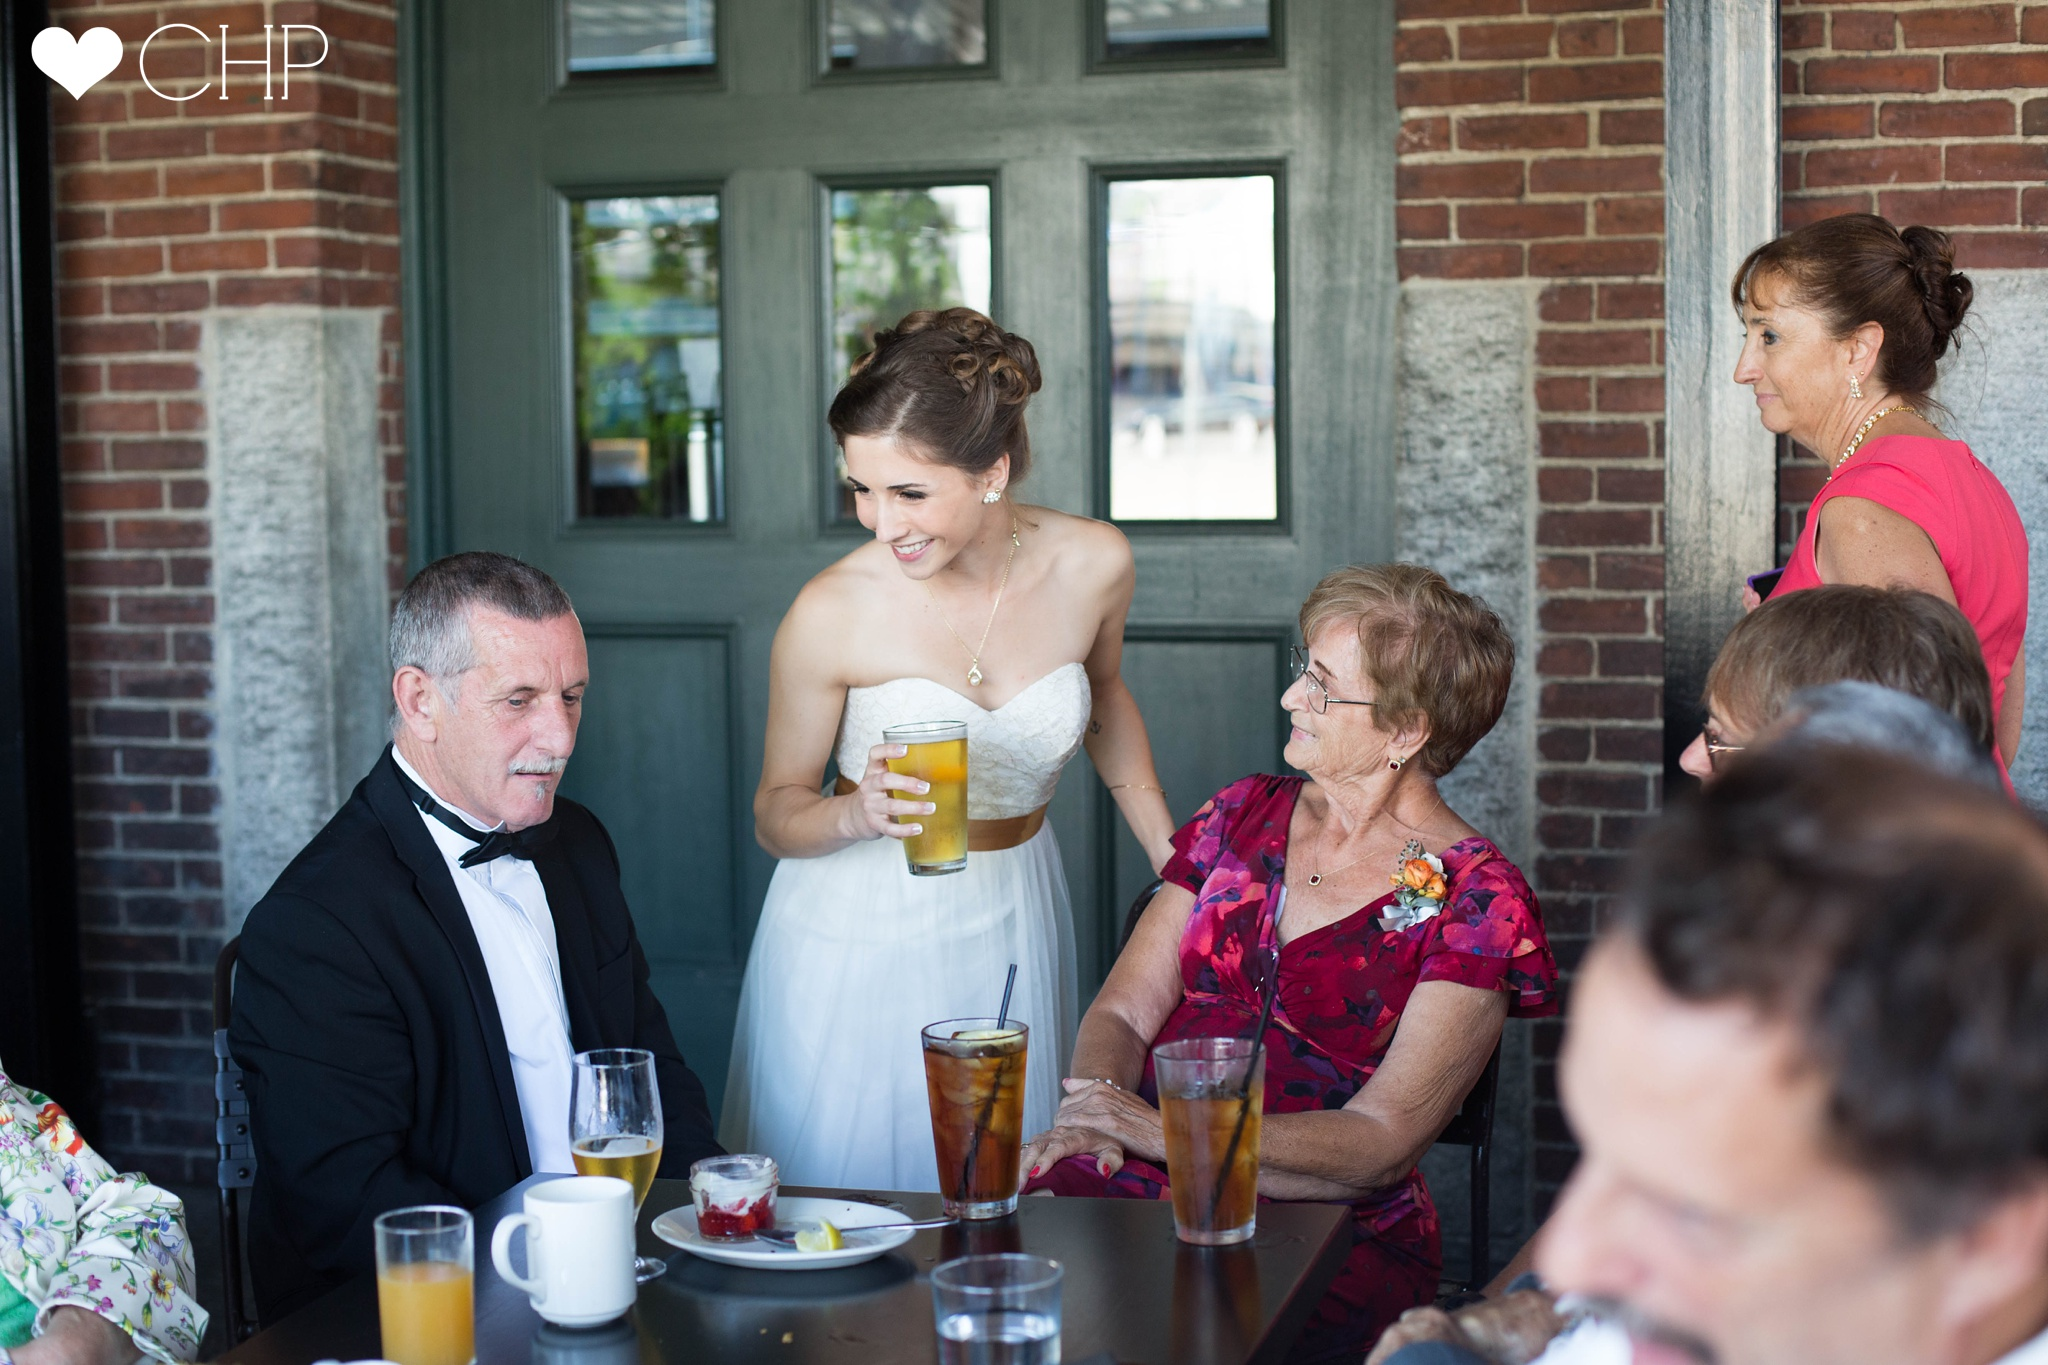 Wedding-Photographers-that-are-good-in-Maine